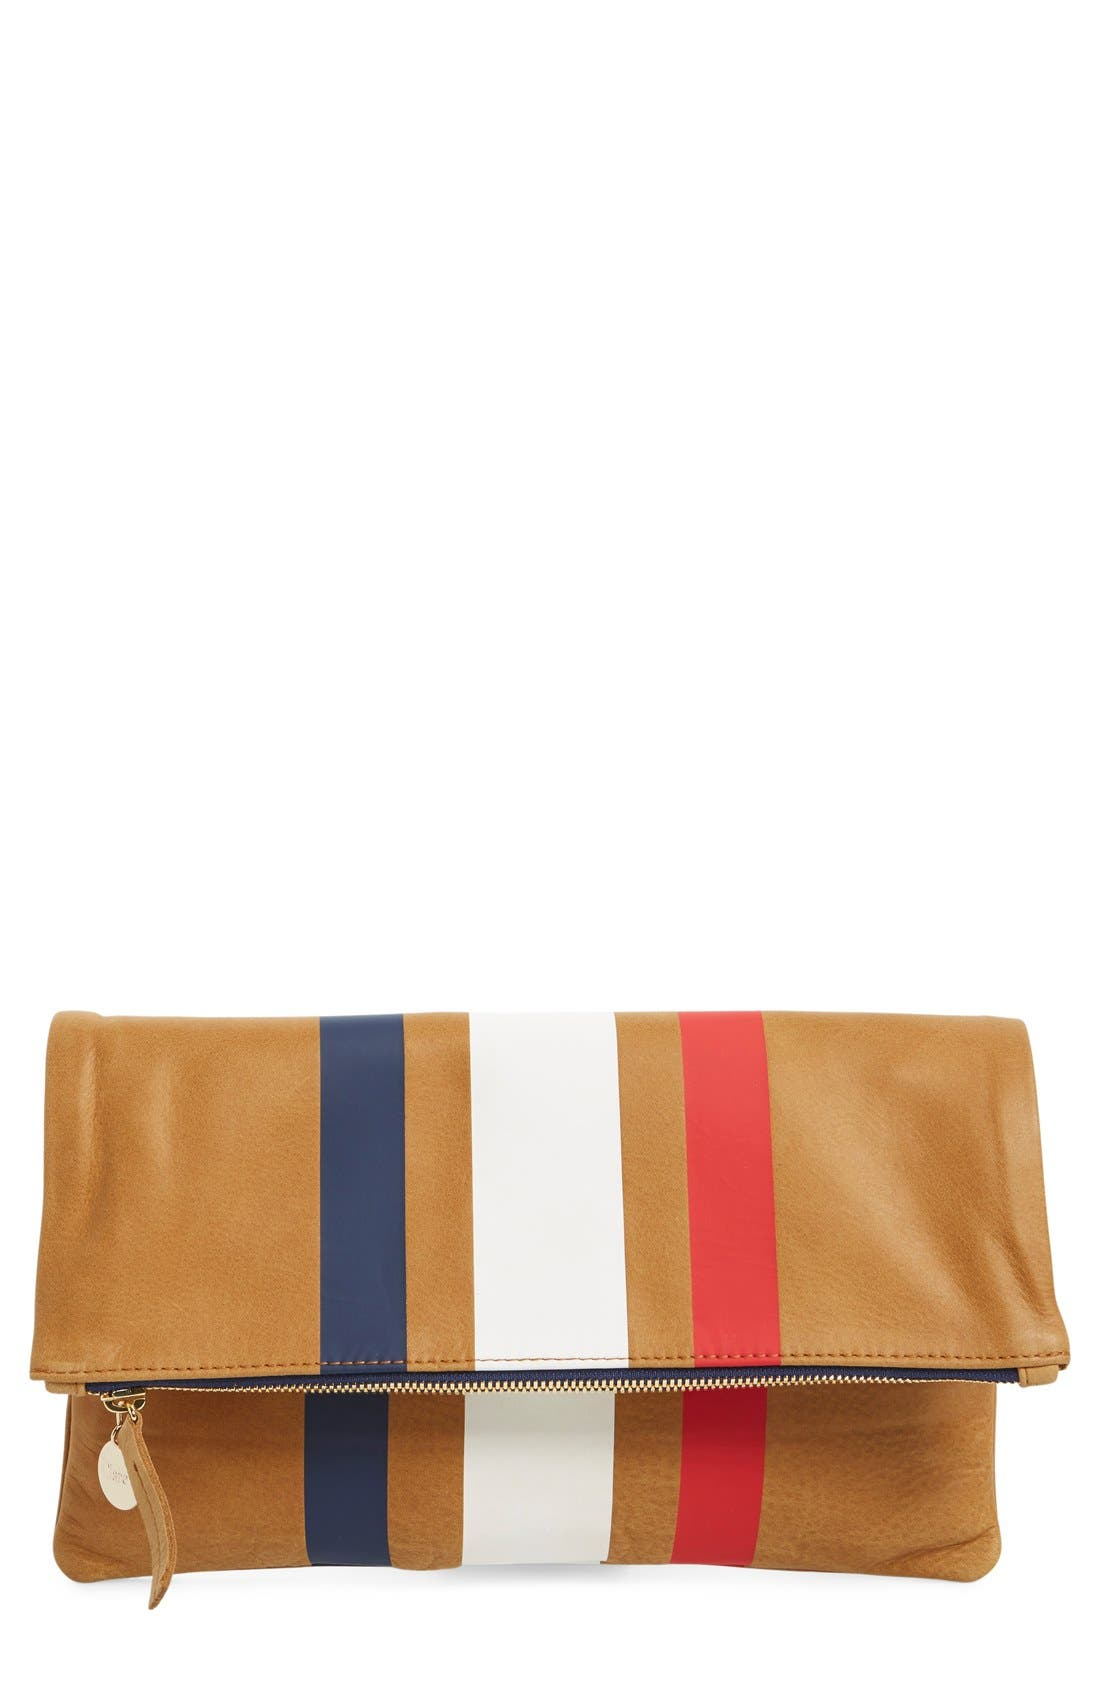 Main Image - Clare V. 'Supreme' Stripe Leather Foldover Clutch